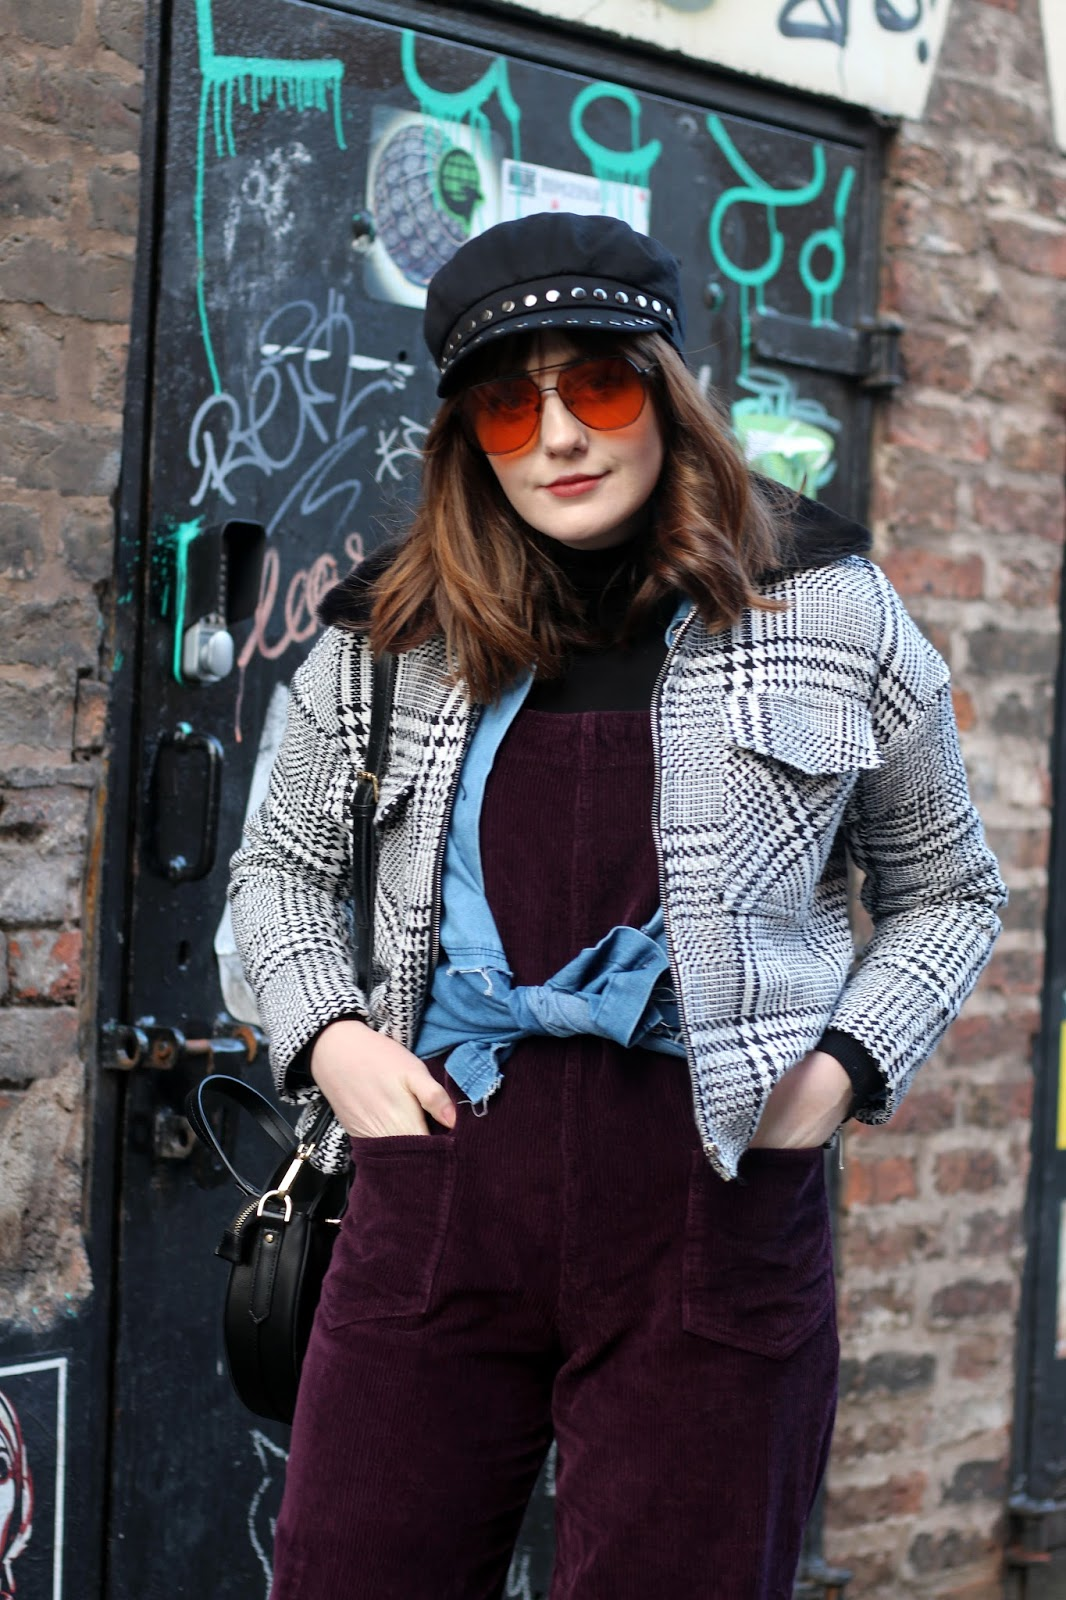 dungarees seventies style fashion with baker boy cap, aviator sunglasses, check jacket and Burgundy cord dungarees